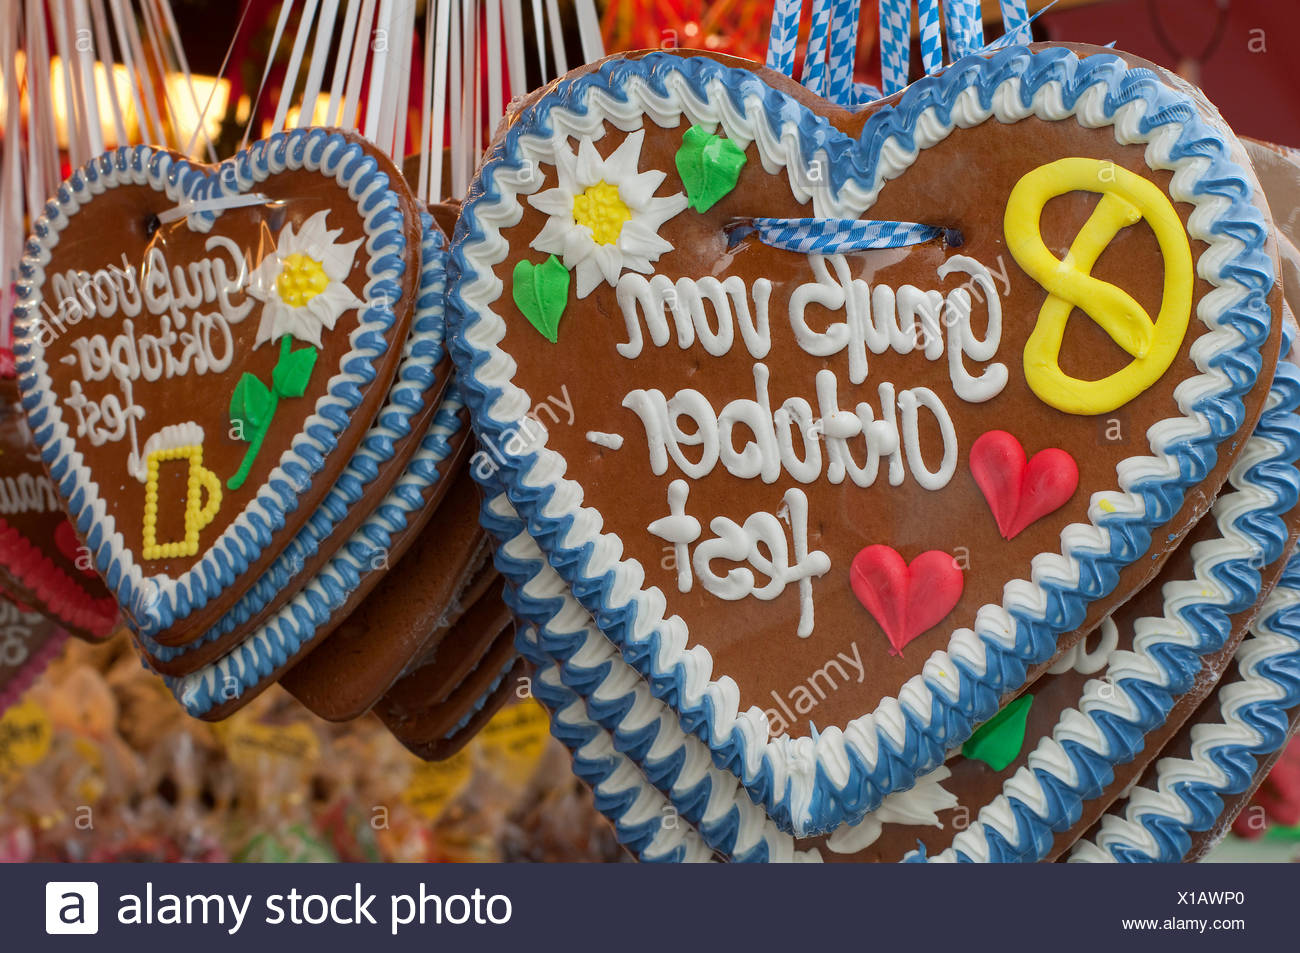 munich Octoberfest sweetness - Stock Image